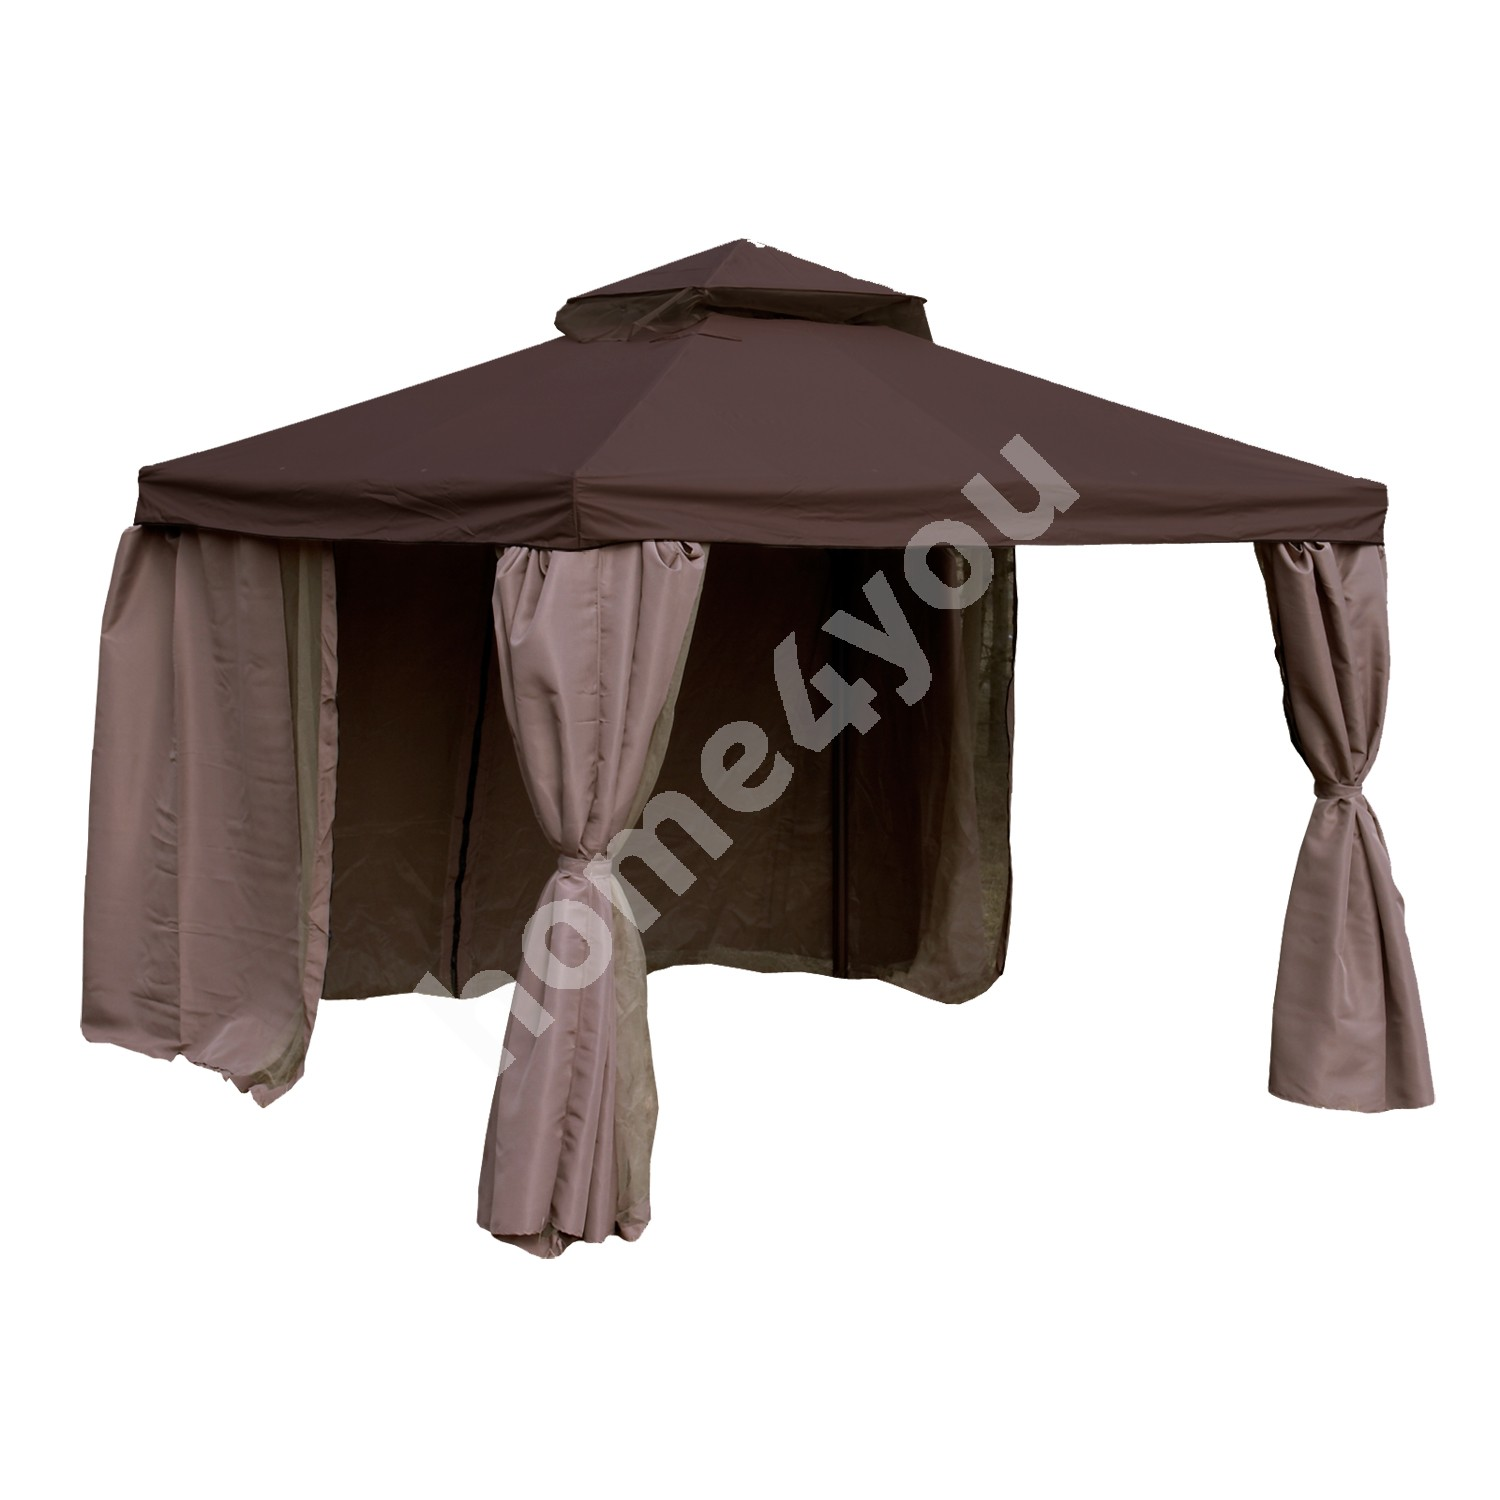 Gazebo LEGEND 3x4m, aluminum frame, roof and side walls: polyester fabric, color: dark brown-beige